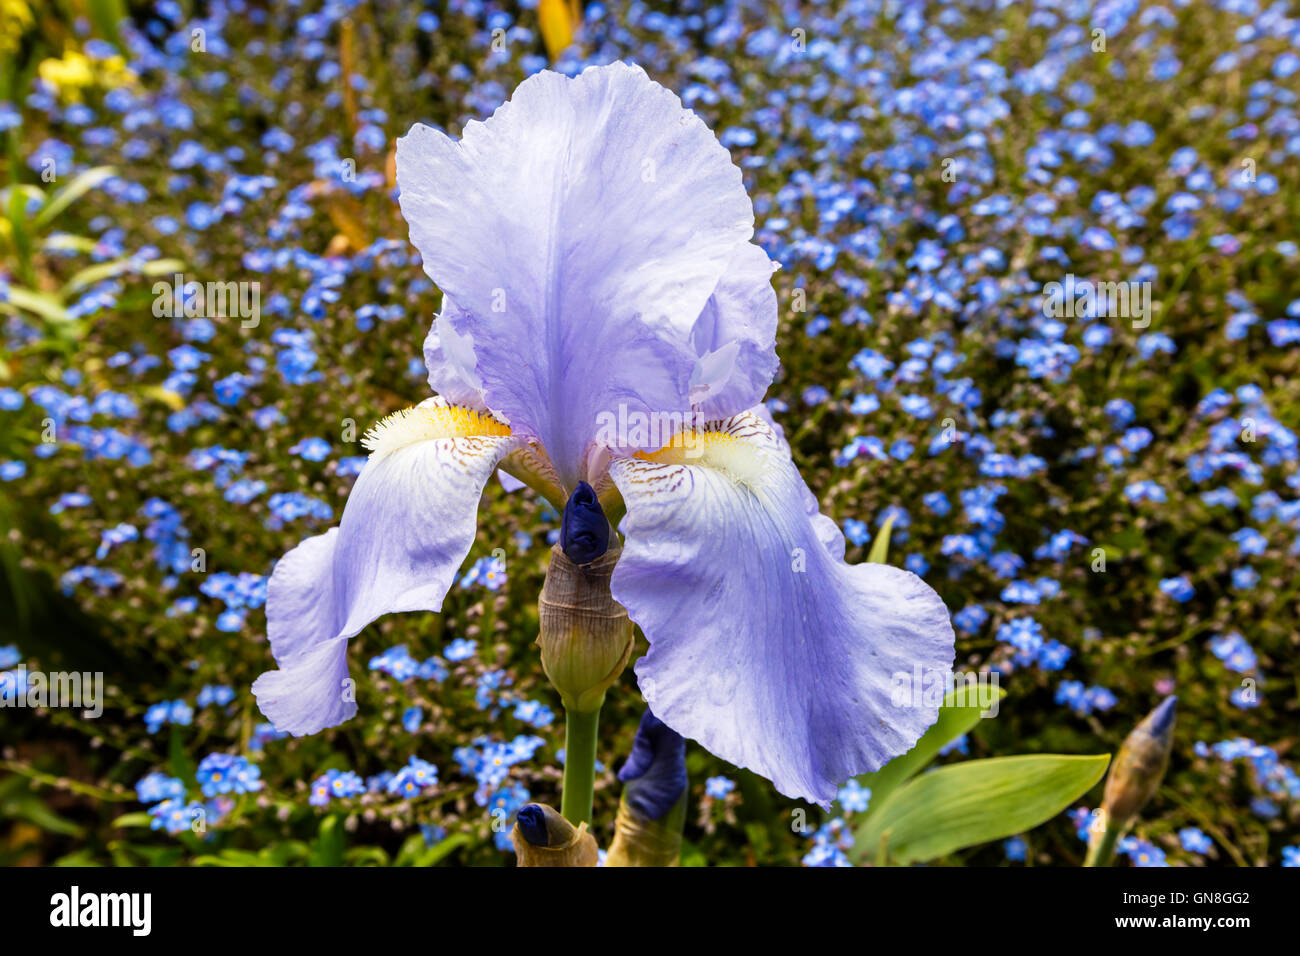 Pale blue Bearded Iris (Iris Germanica)  in full bloom in a garden close-up. - Stock Image